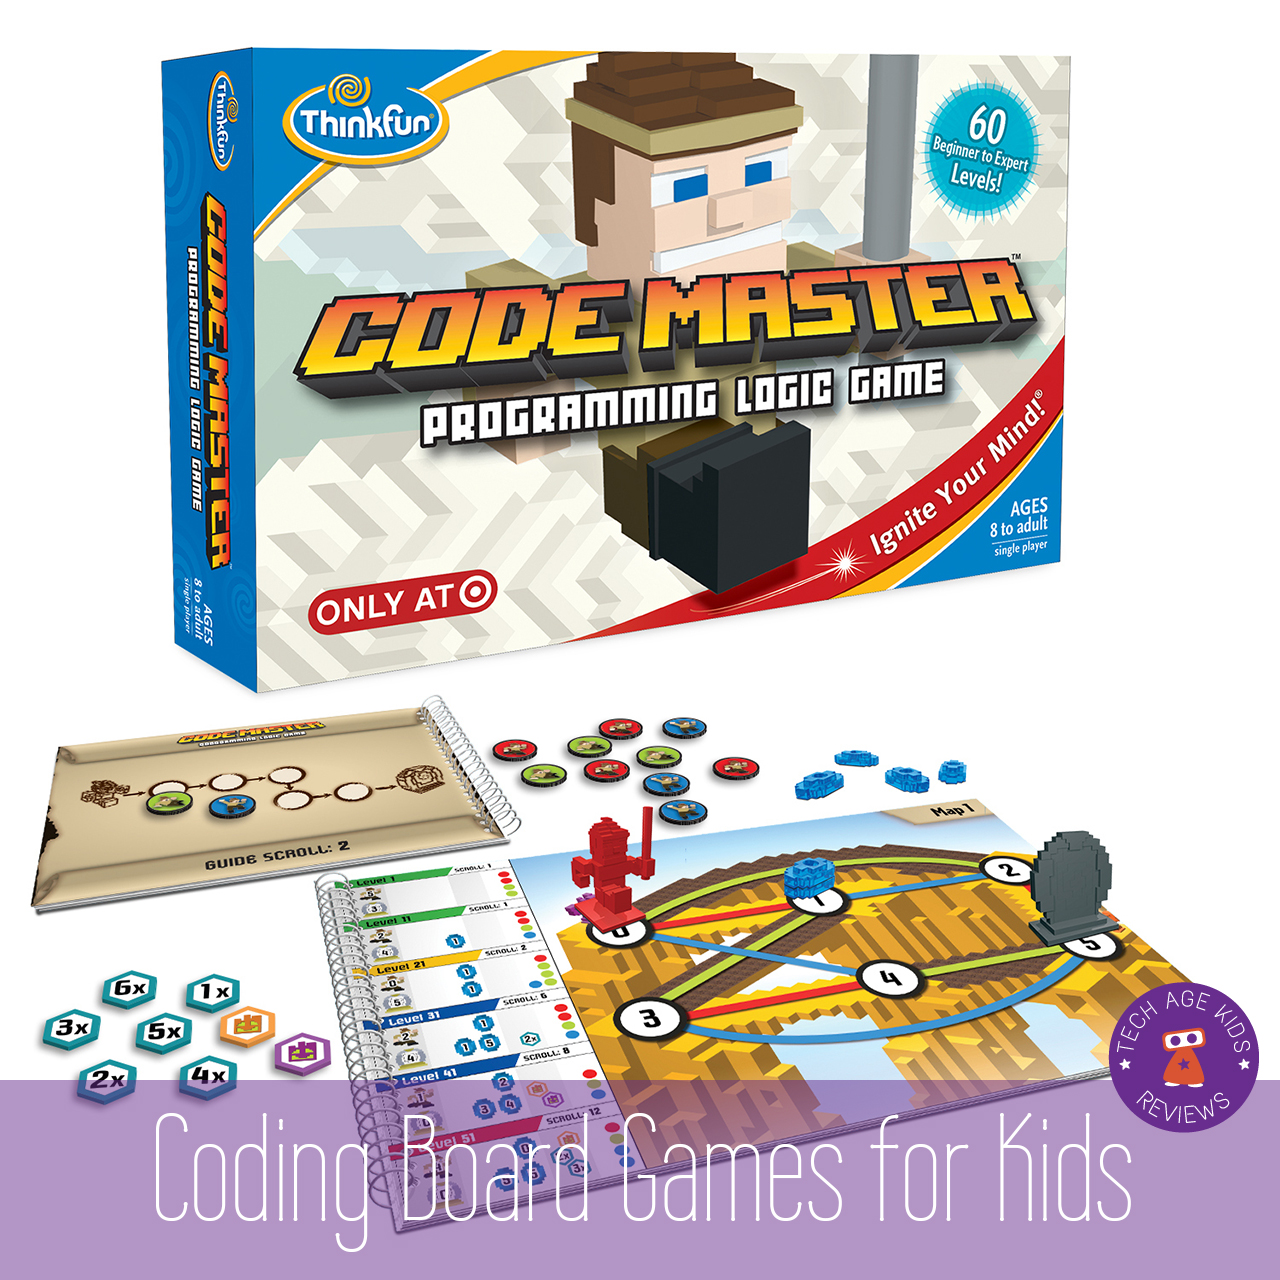 Board Games Toy : Board games that teach coding concepts to kids and teens